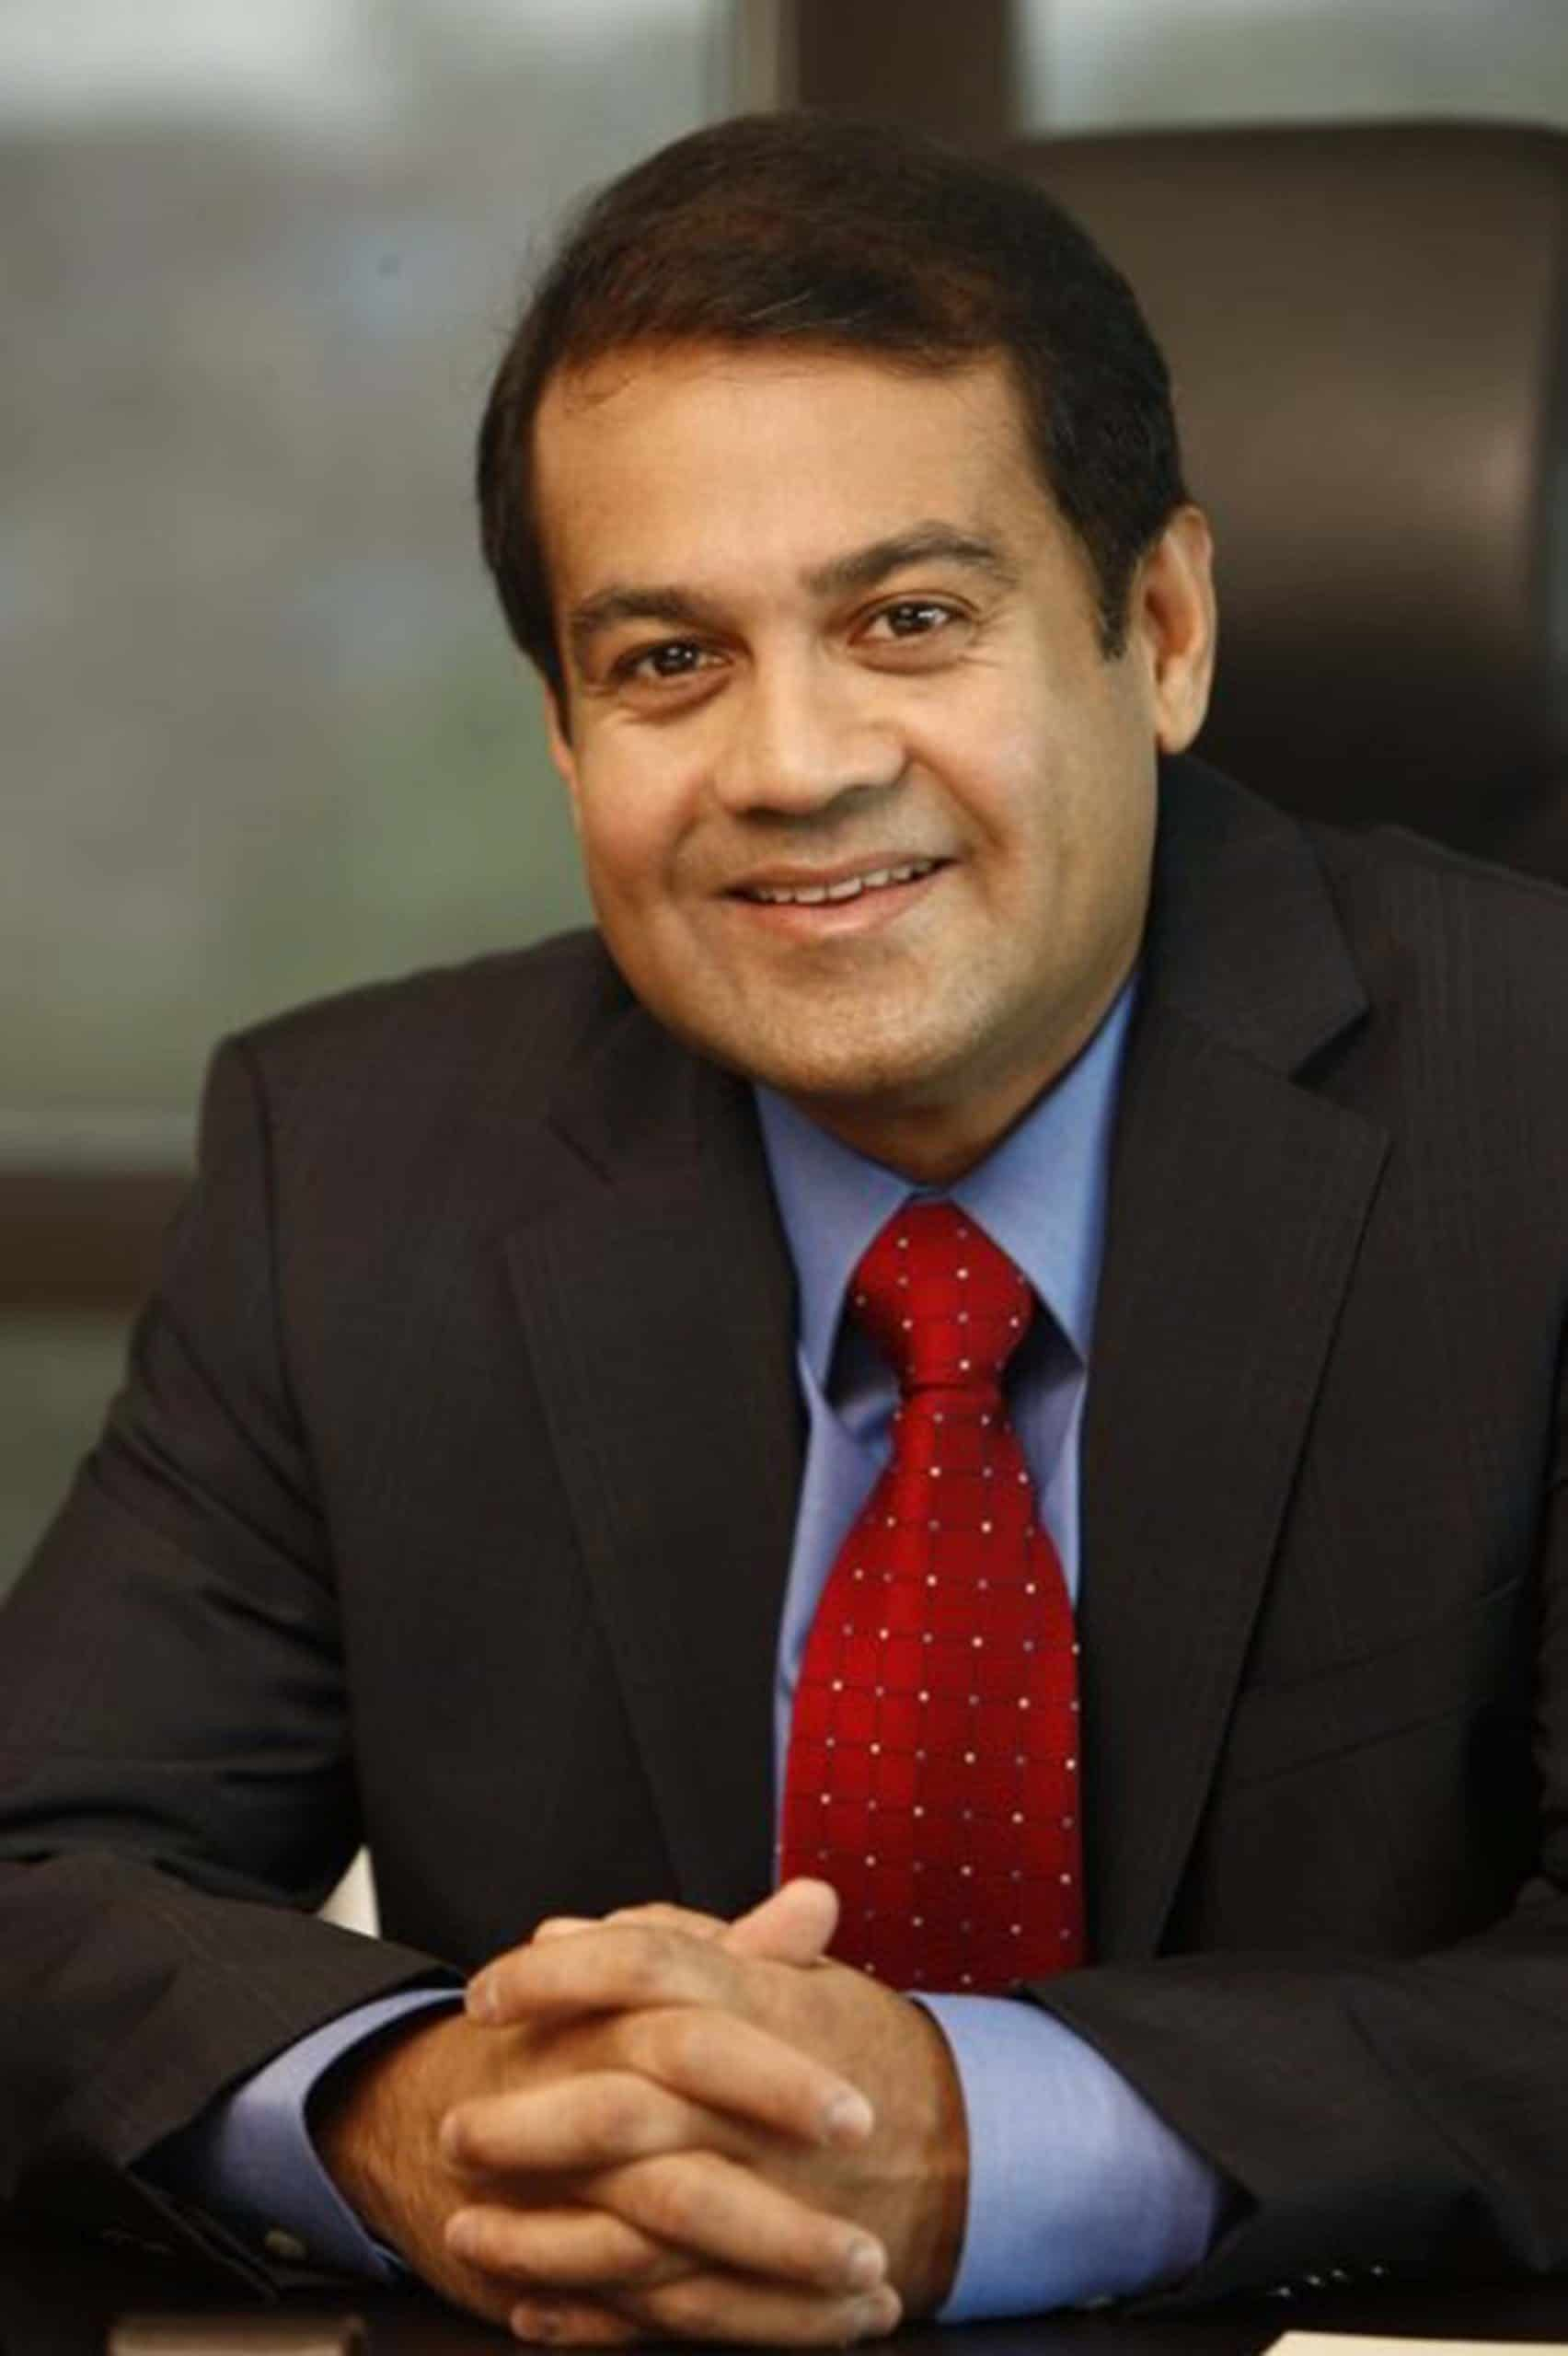 Colin Shah appointed as Chairman of India's Gem and Jewellery Export Promotion Council